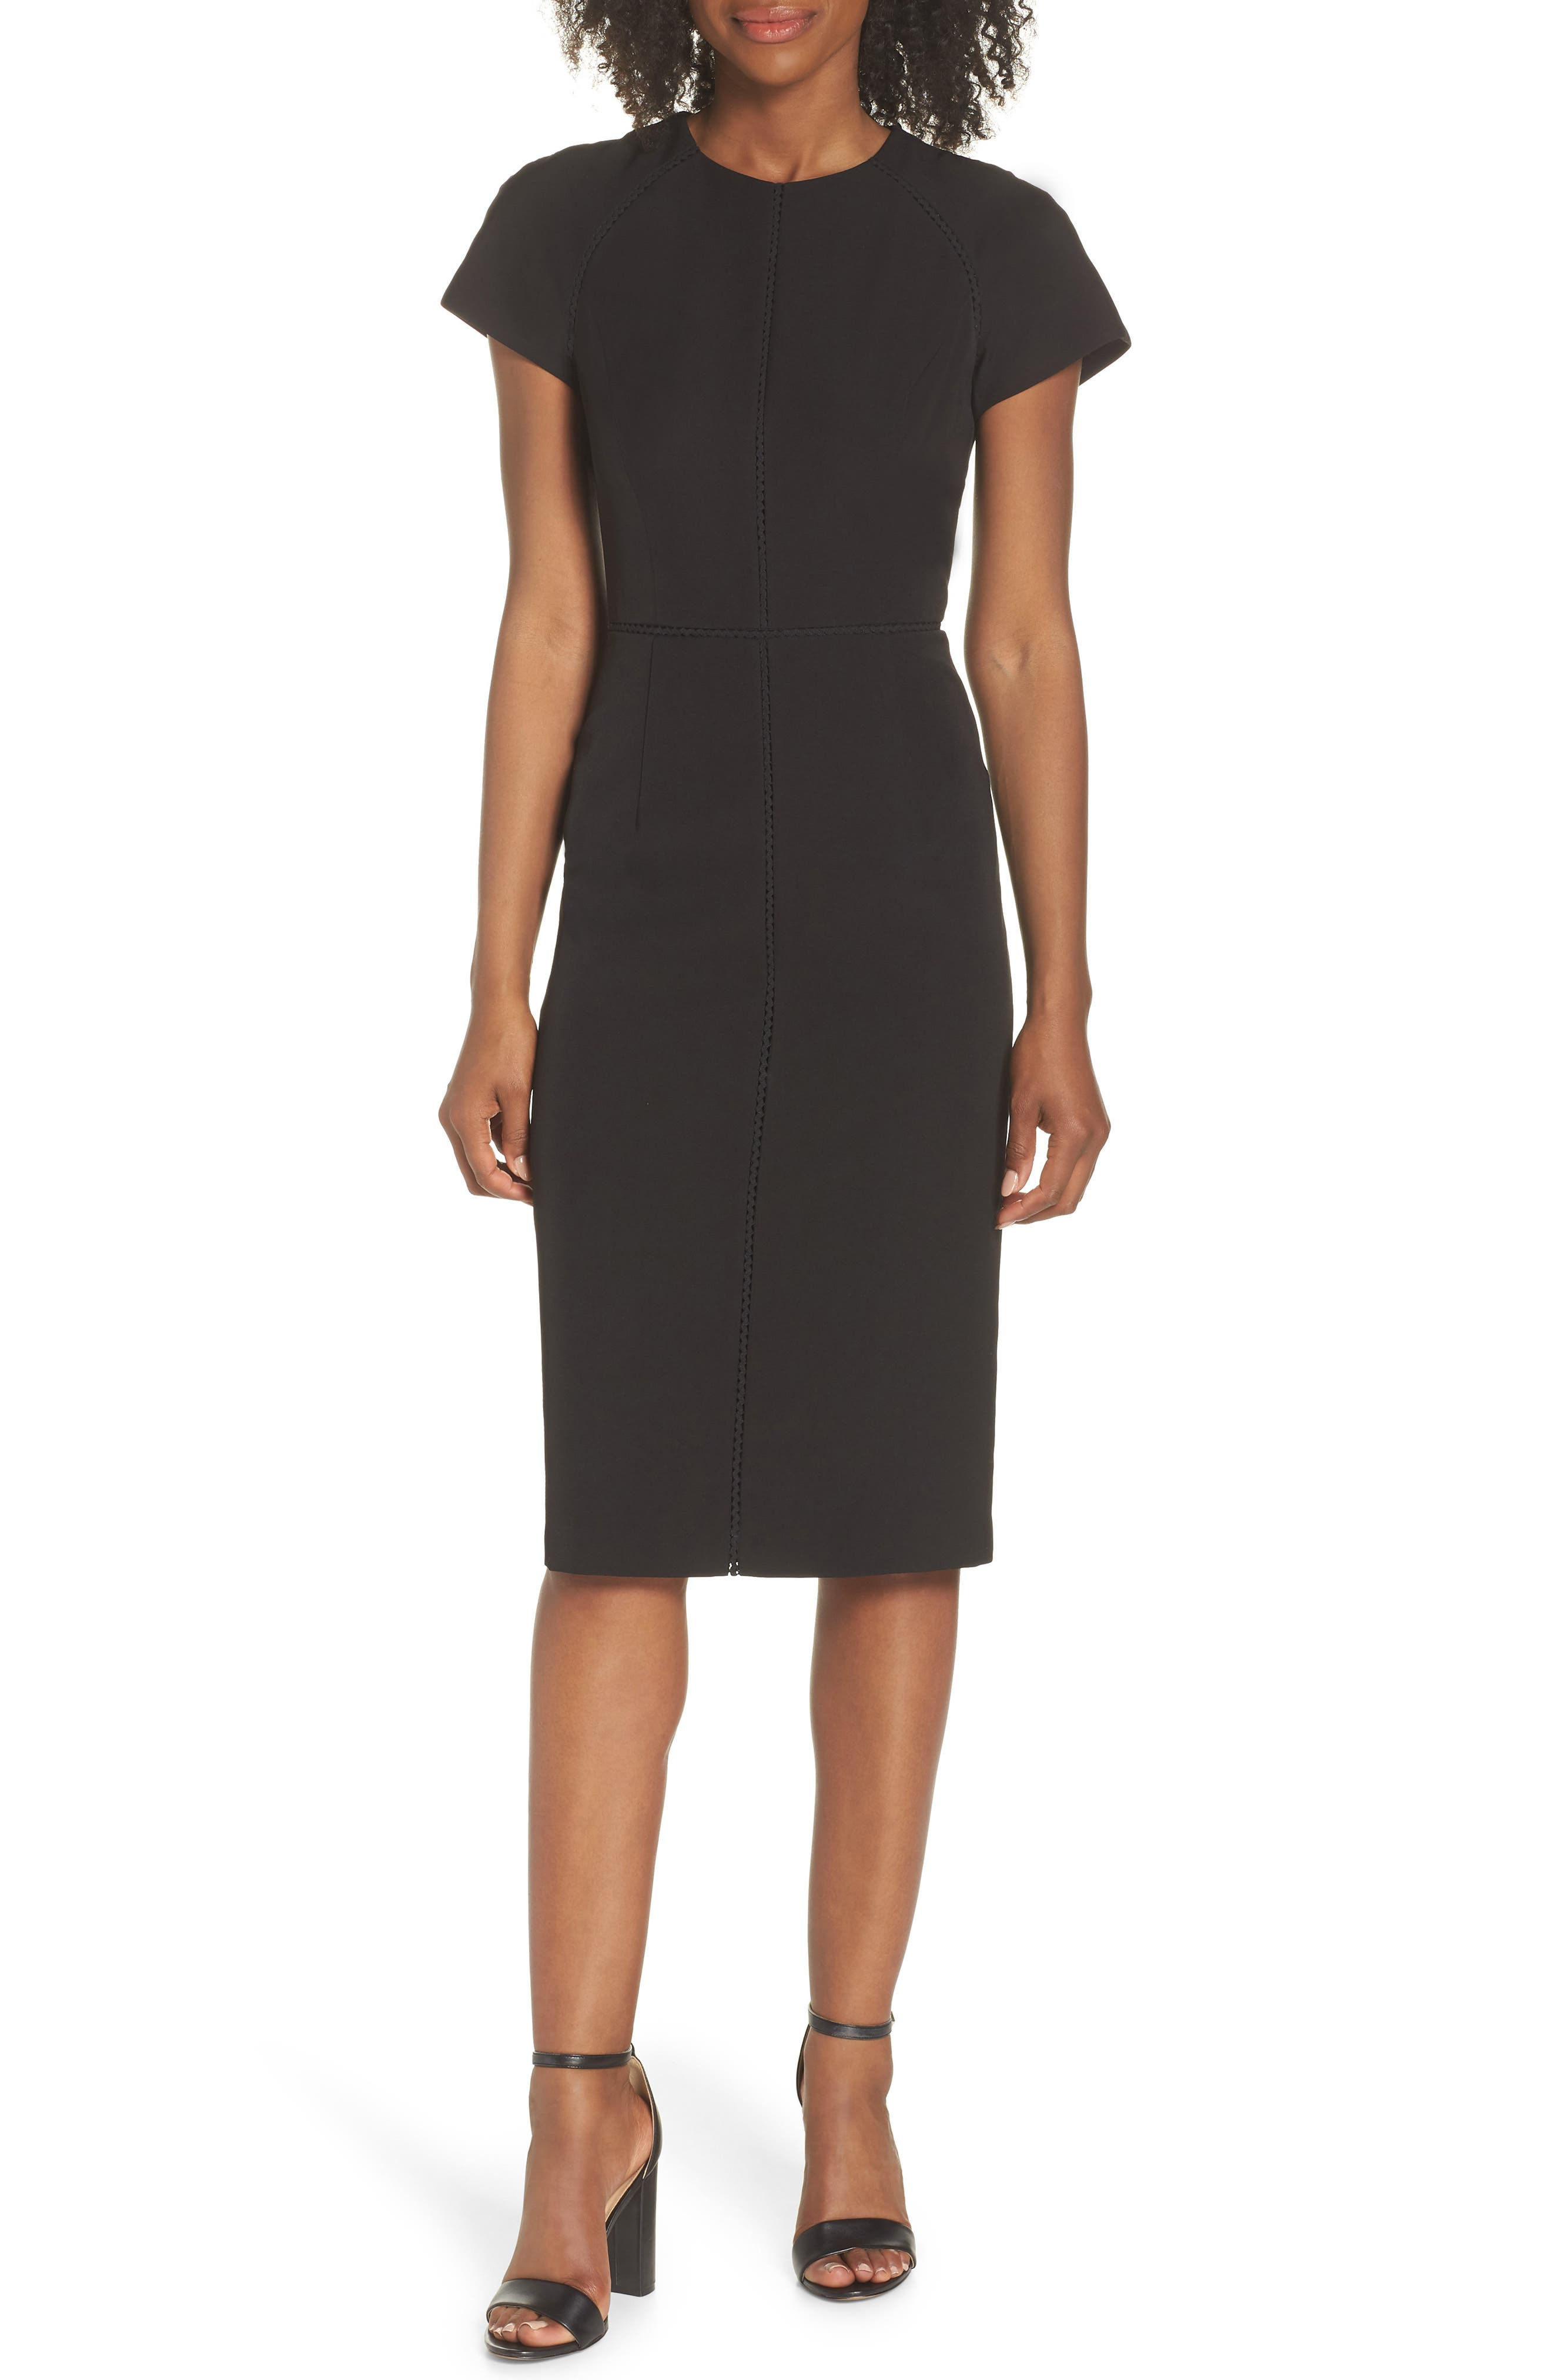 Dream Crepe Sheath Dress by Maggy London